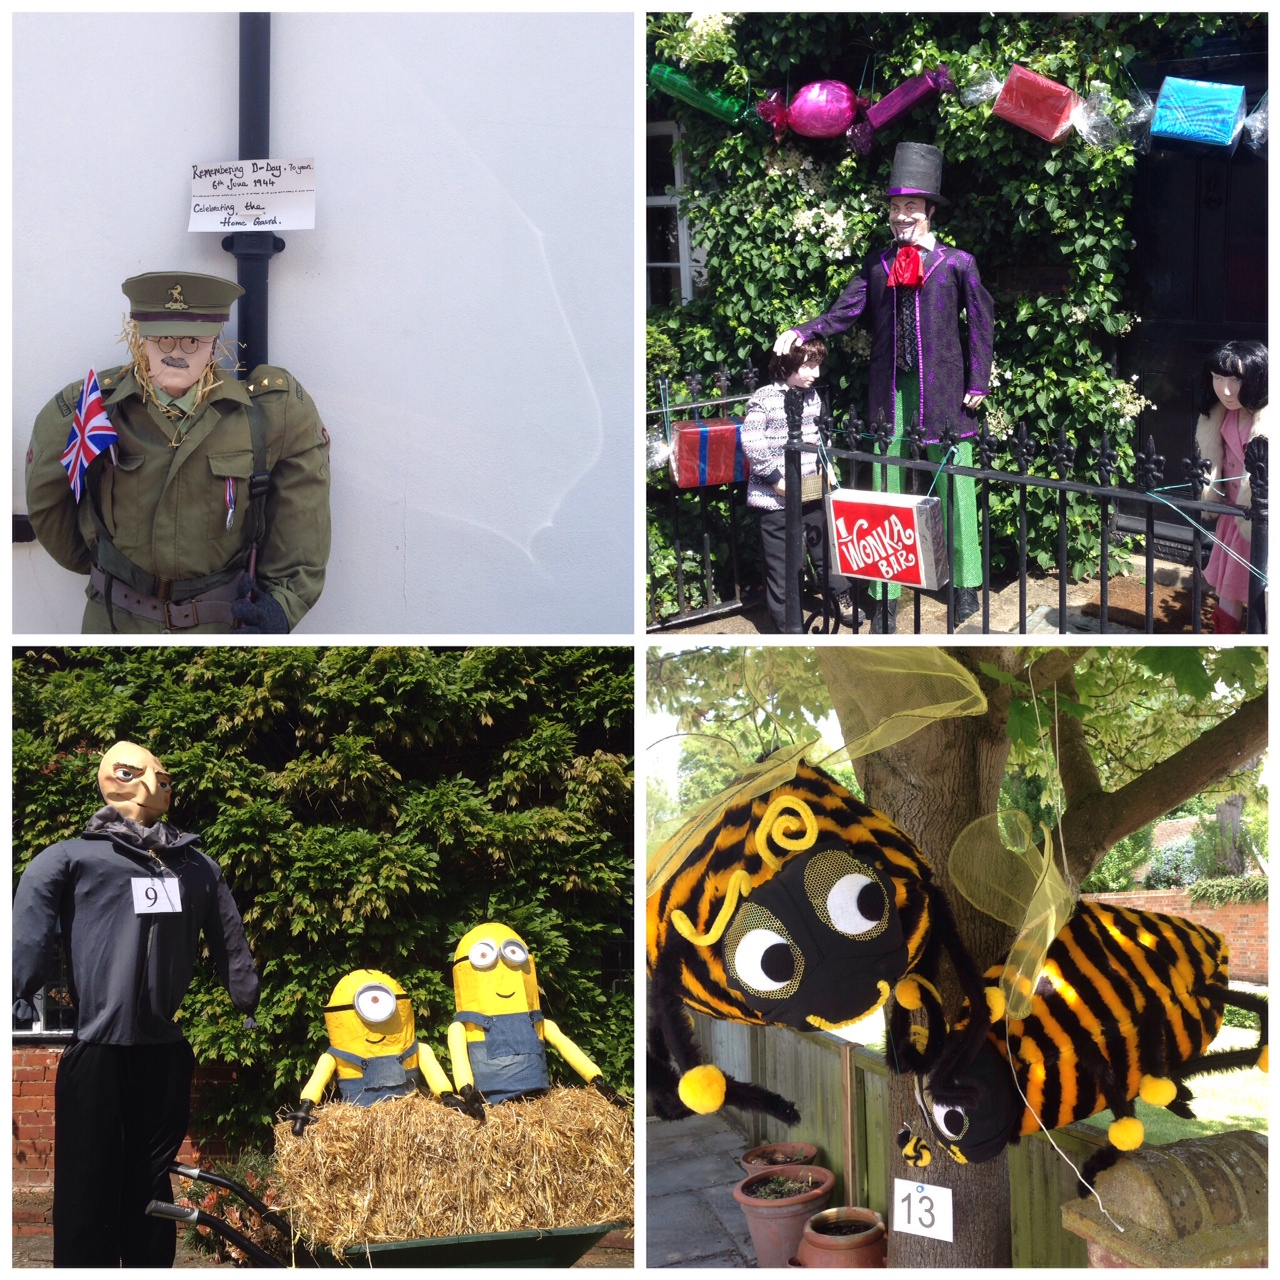 Captain Mainwaring, Willy Wonka, Gru & Minions and some busy bees...